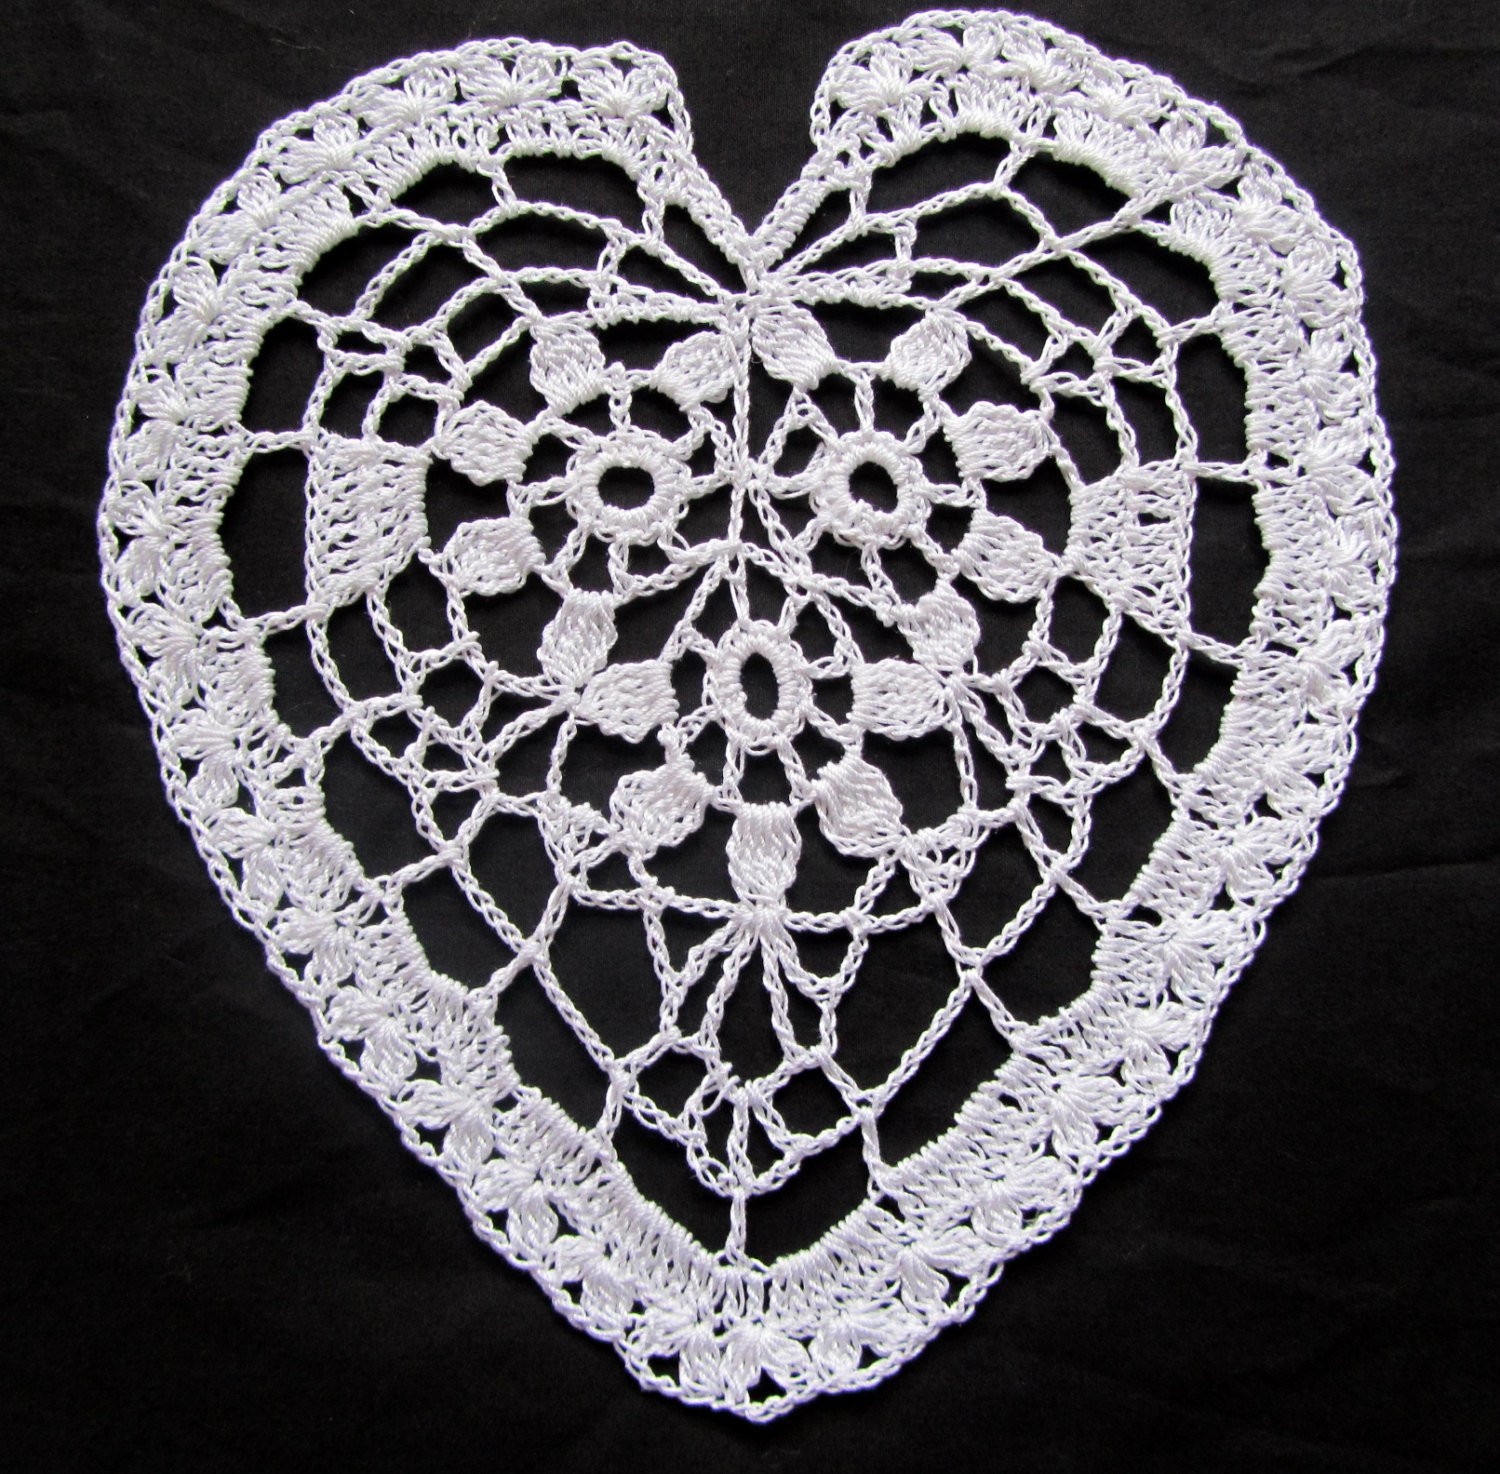 End Table Doilies Inspirational Sale Crochet Heart Doily White Heart Doily Coffee Table Of Great 42 Images End Table Doilies